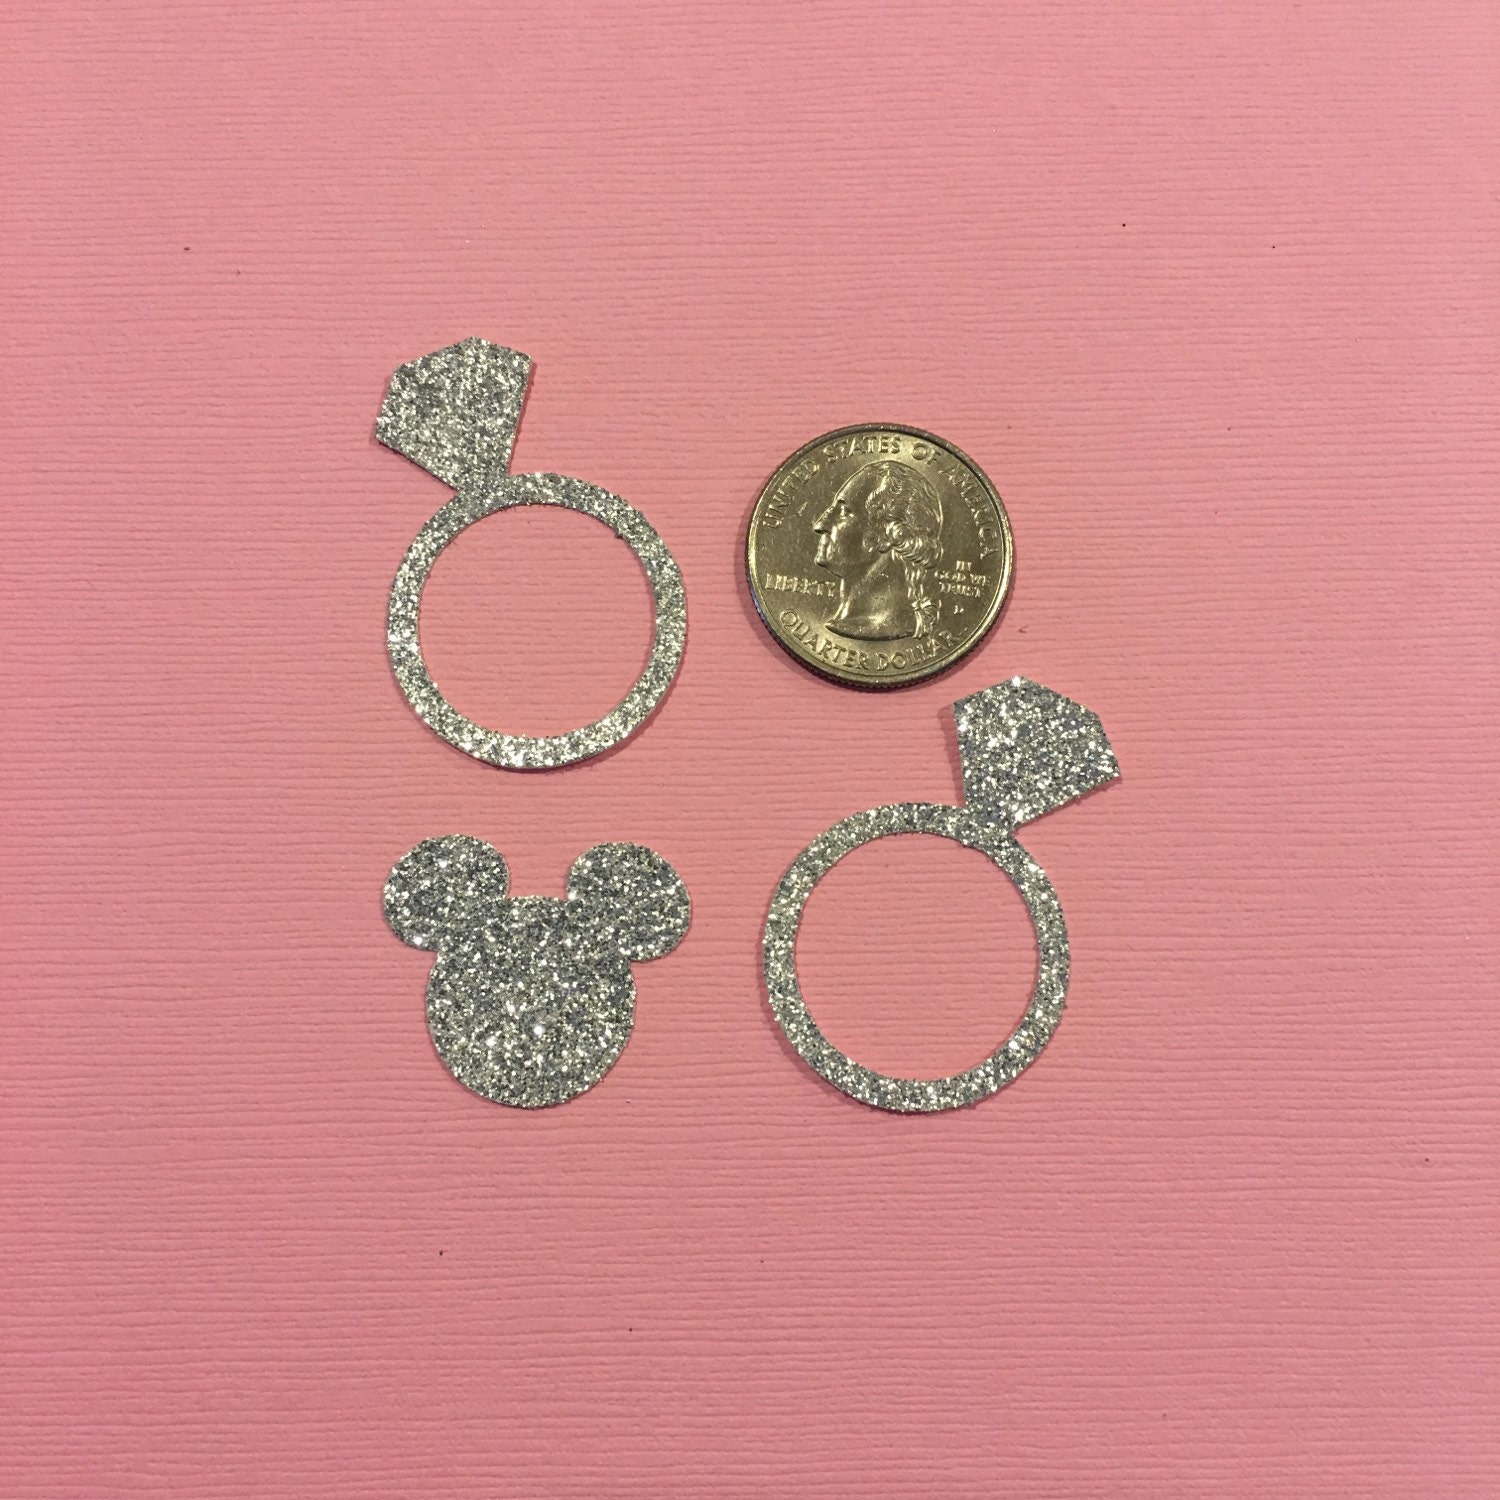 Minnie Mouse Inspired Wedding Confetti - Diamond Rings Minnie Mouse ...